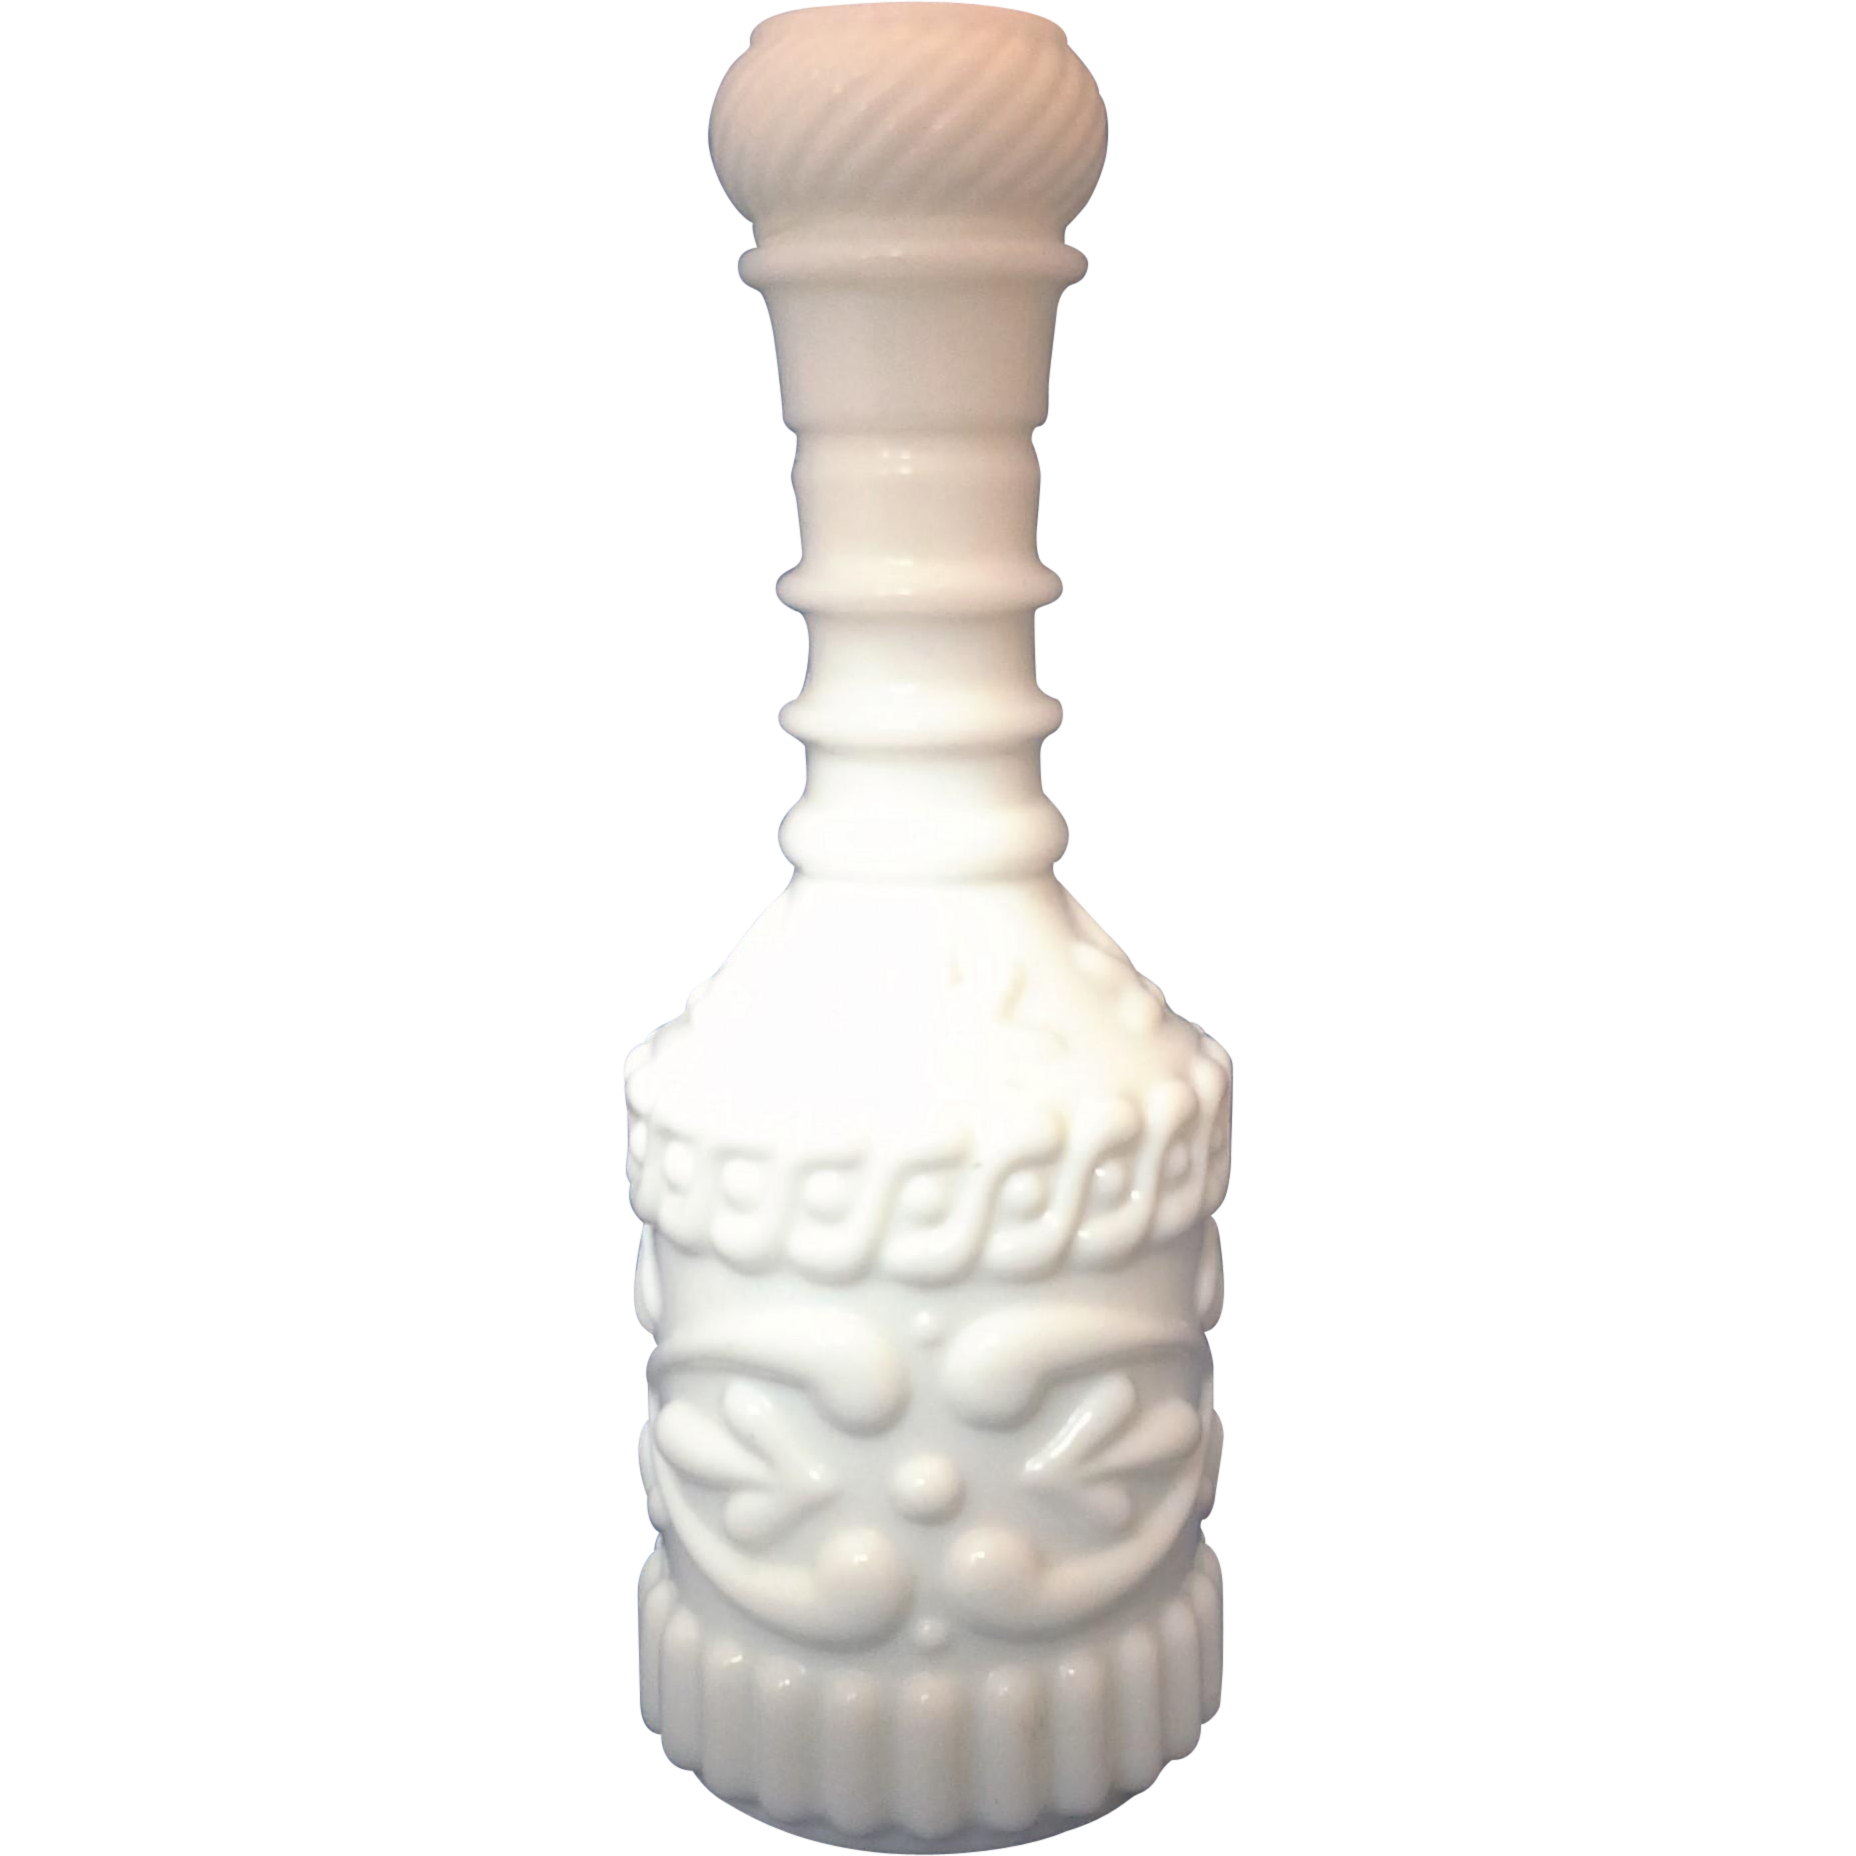 White Milk Glass Highly Embossed Liquor Bottle Jim Beam Decanter